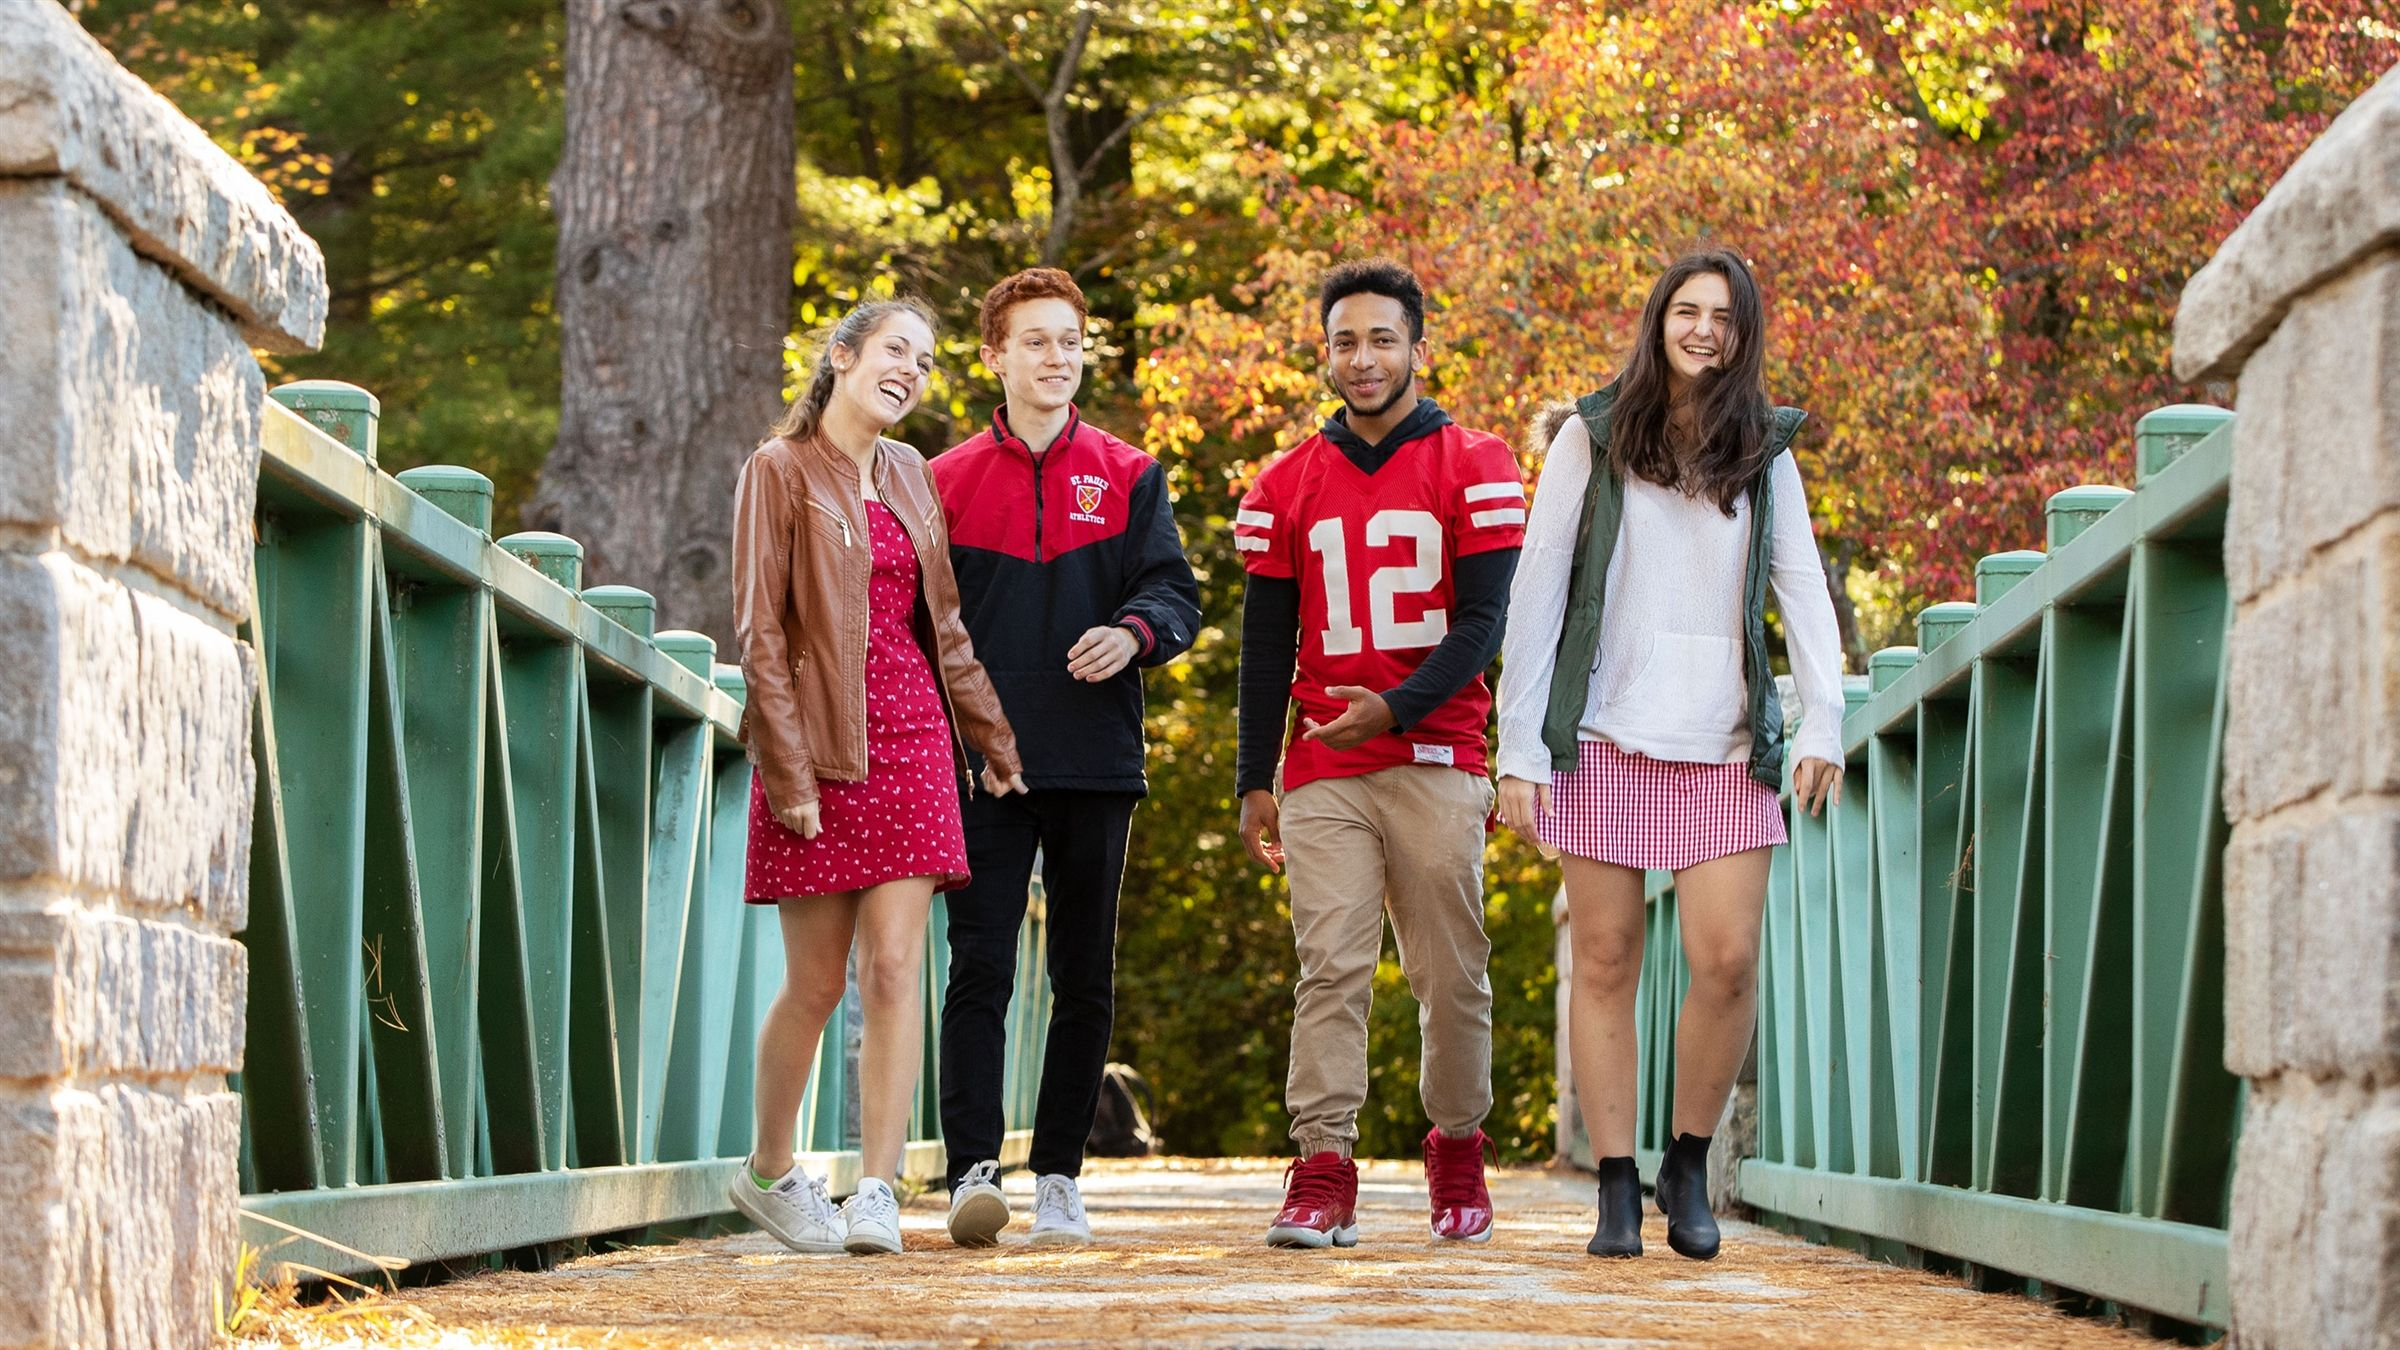 4 students walking across a bridge